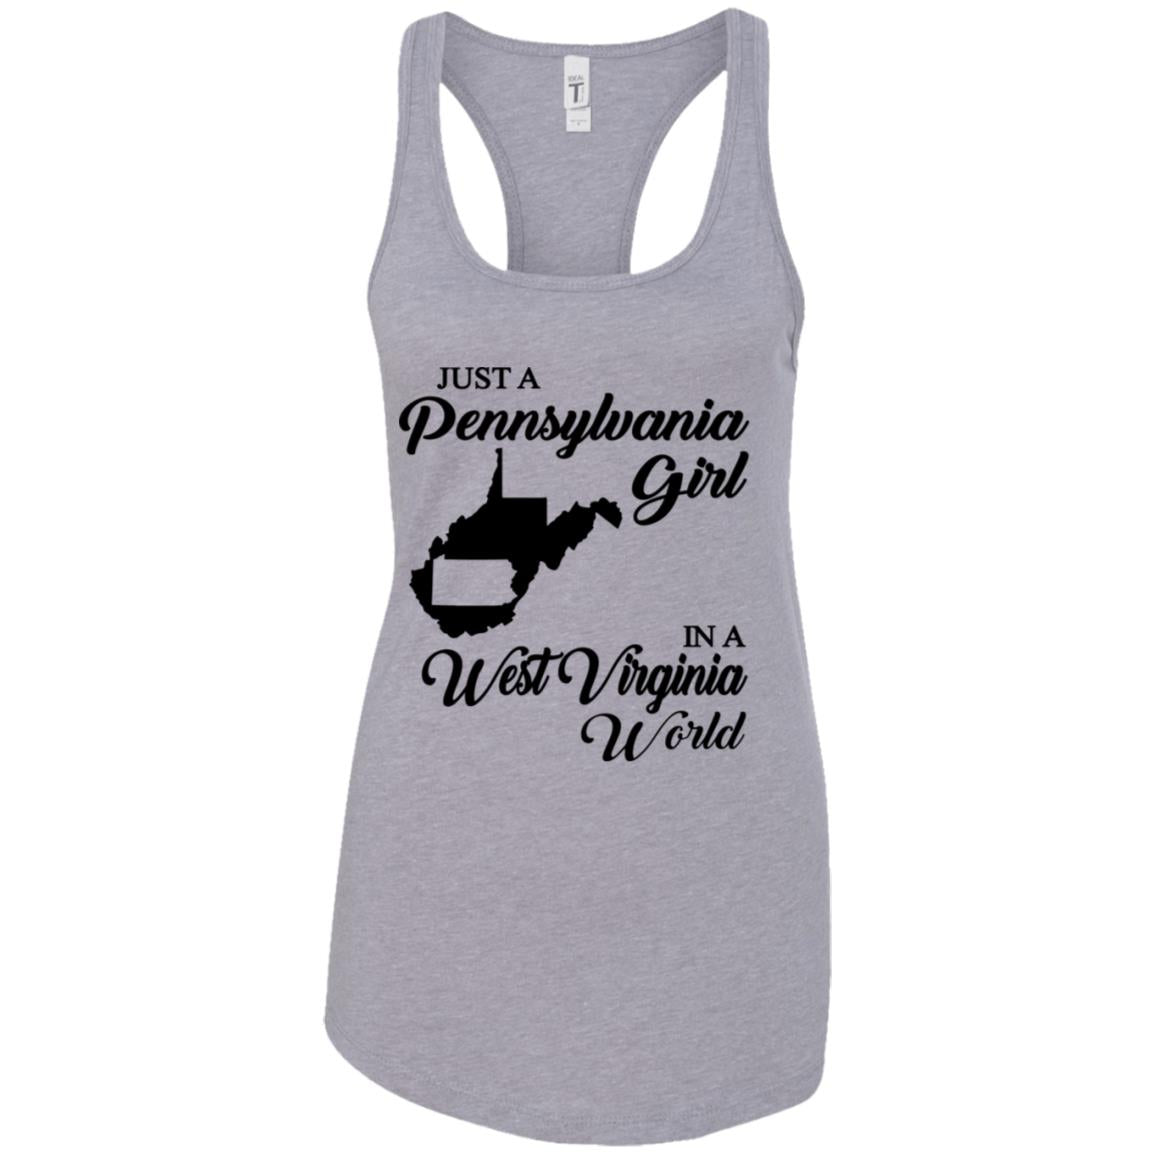 Just A Pennsylvania Girl In A West Virginia World T-Shirt